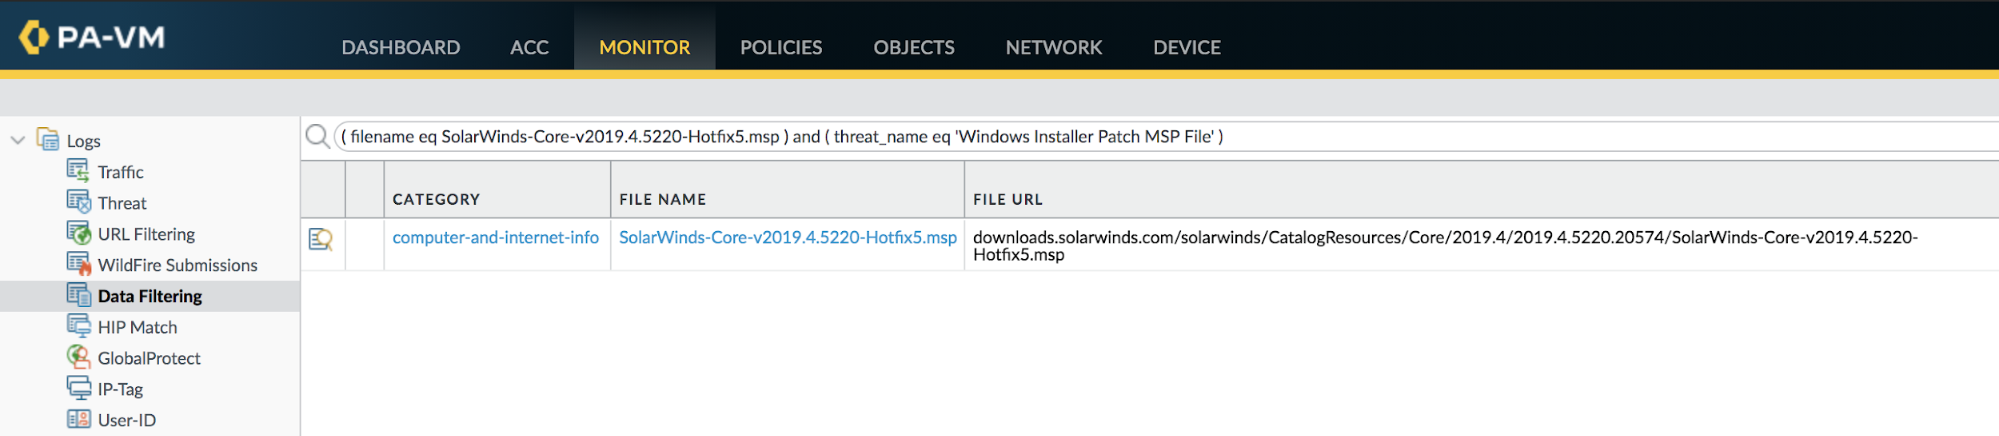 Example of how File Blocking will identify hosts that have downloaded the known filenames associated with the SUNBURST plug-in update.